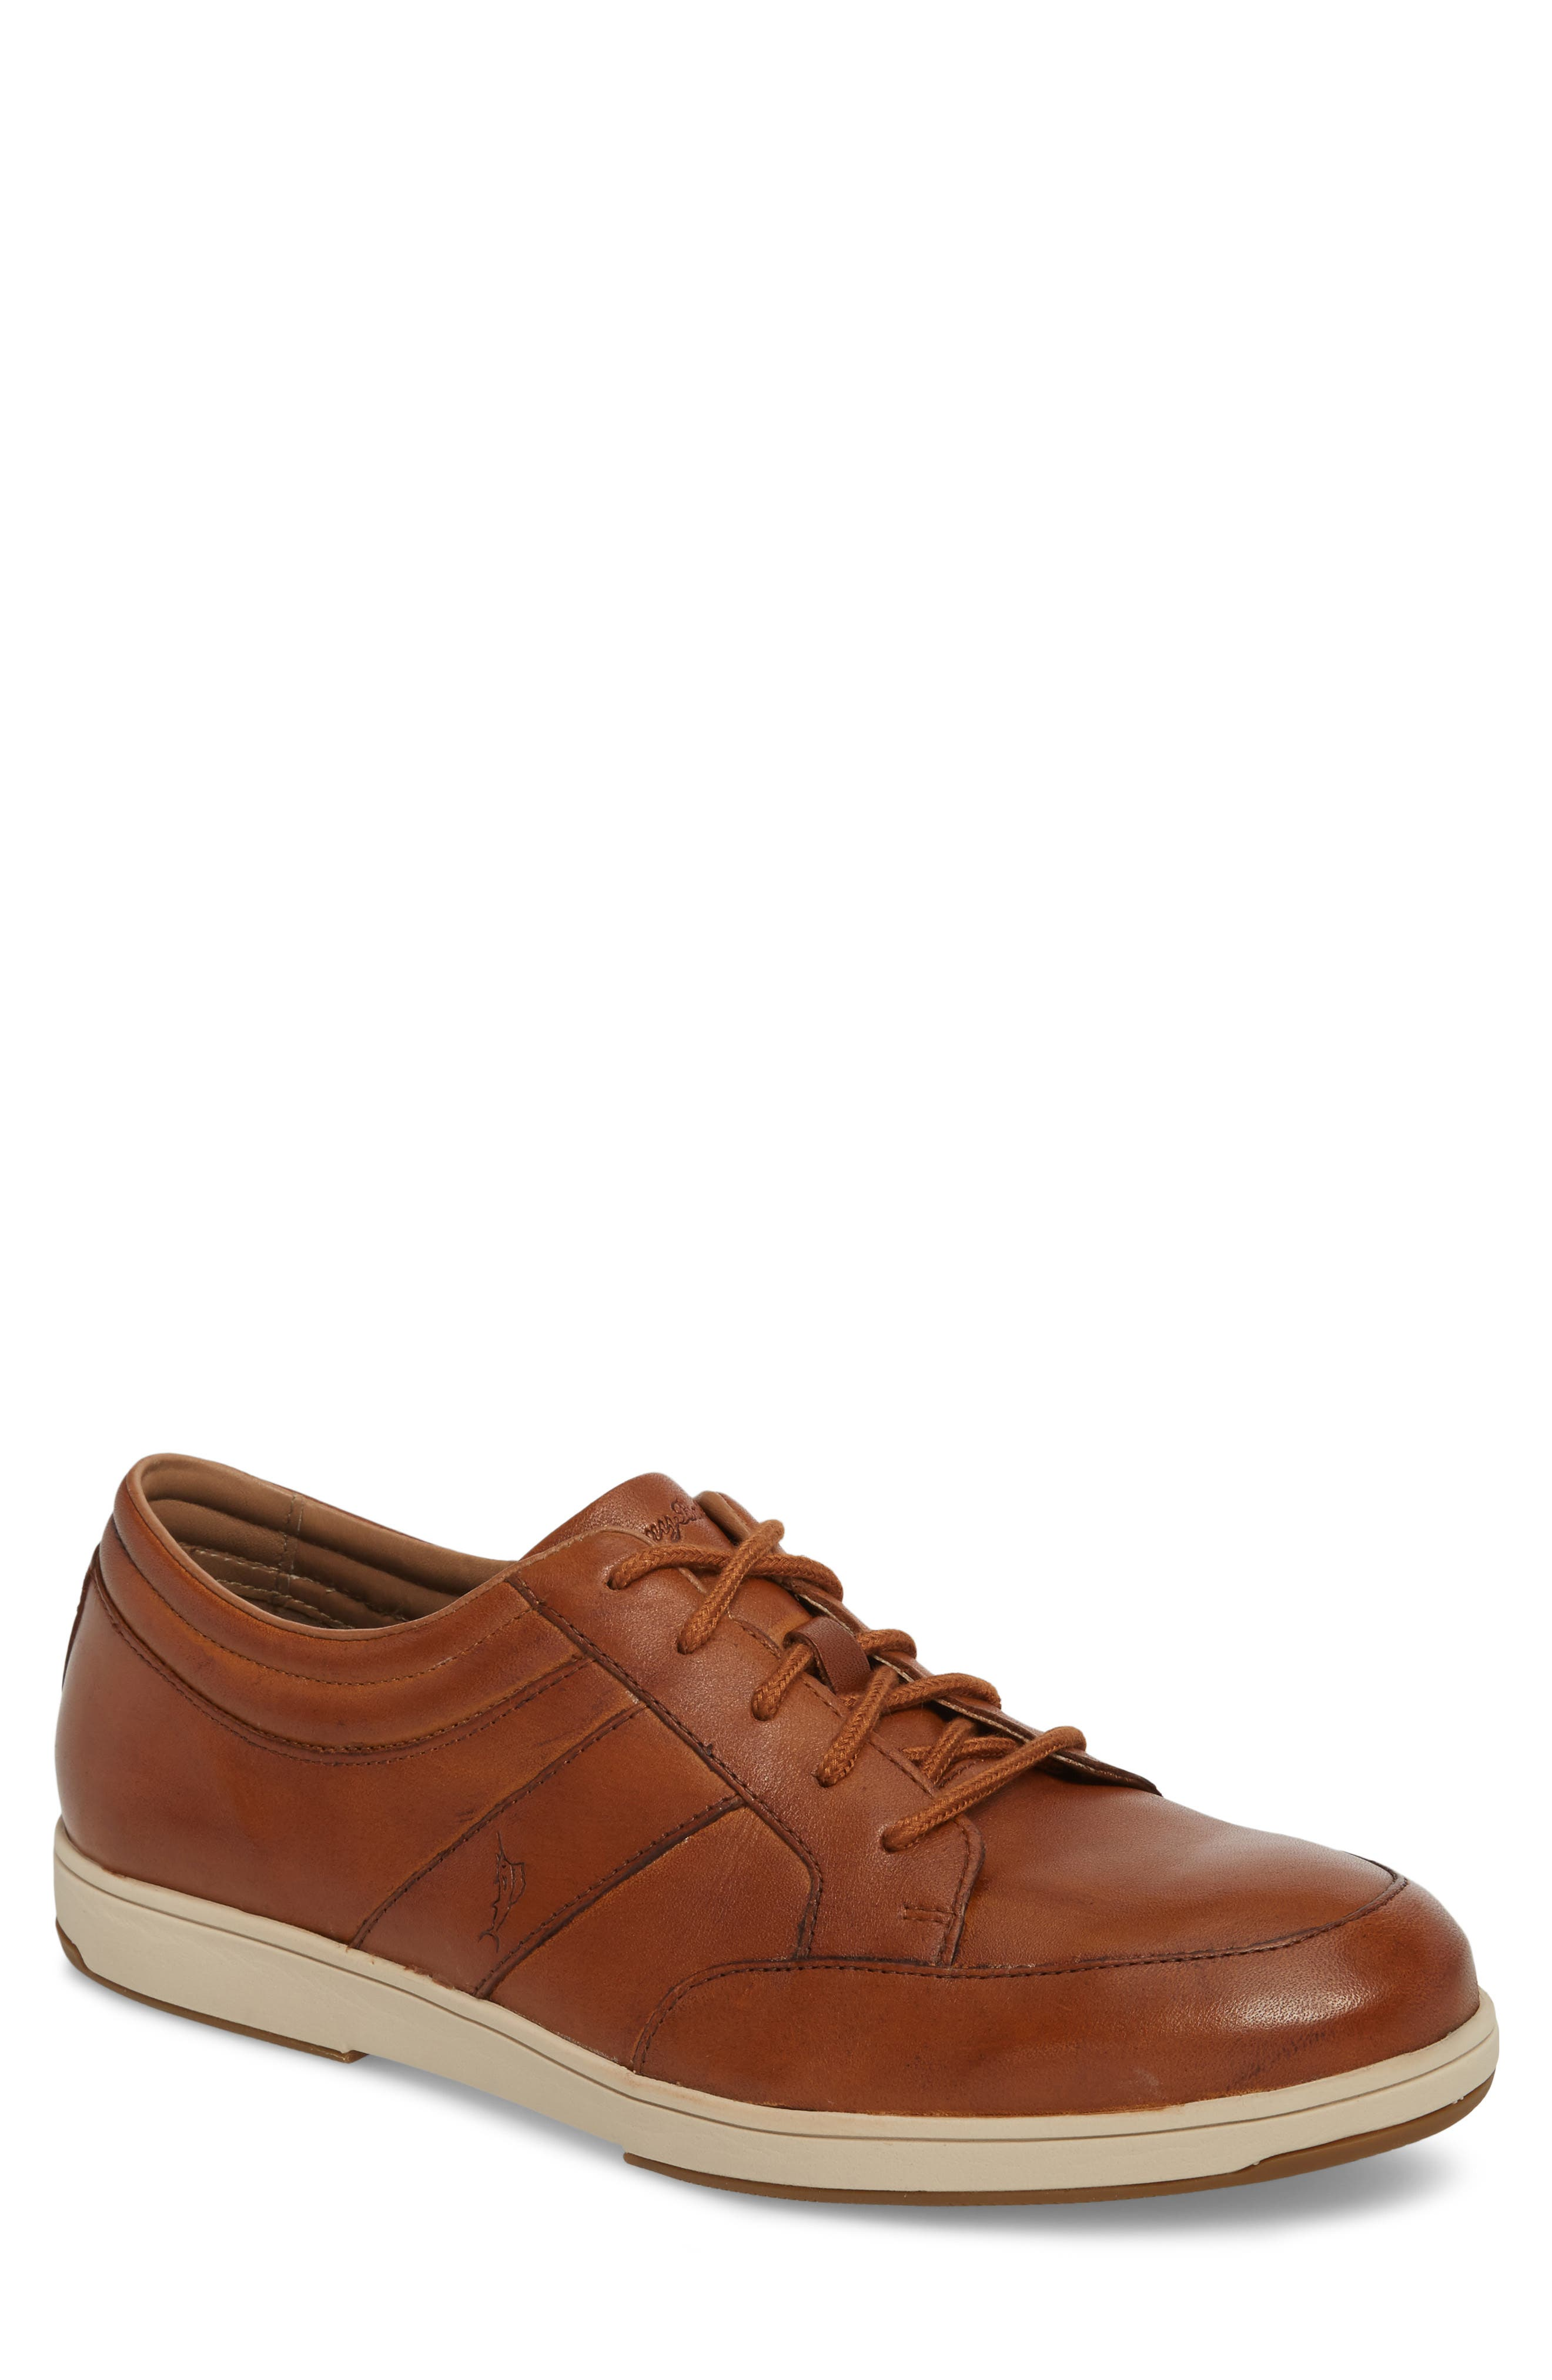 Caicos Authentic Low Top Sneaker,                             Main thumbnail 1, color,                             TAN LEATHER